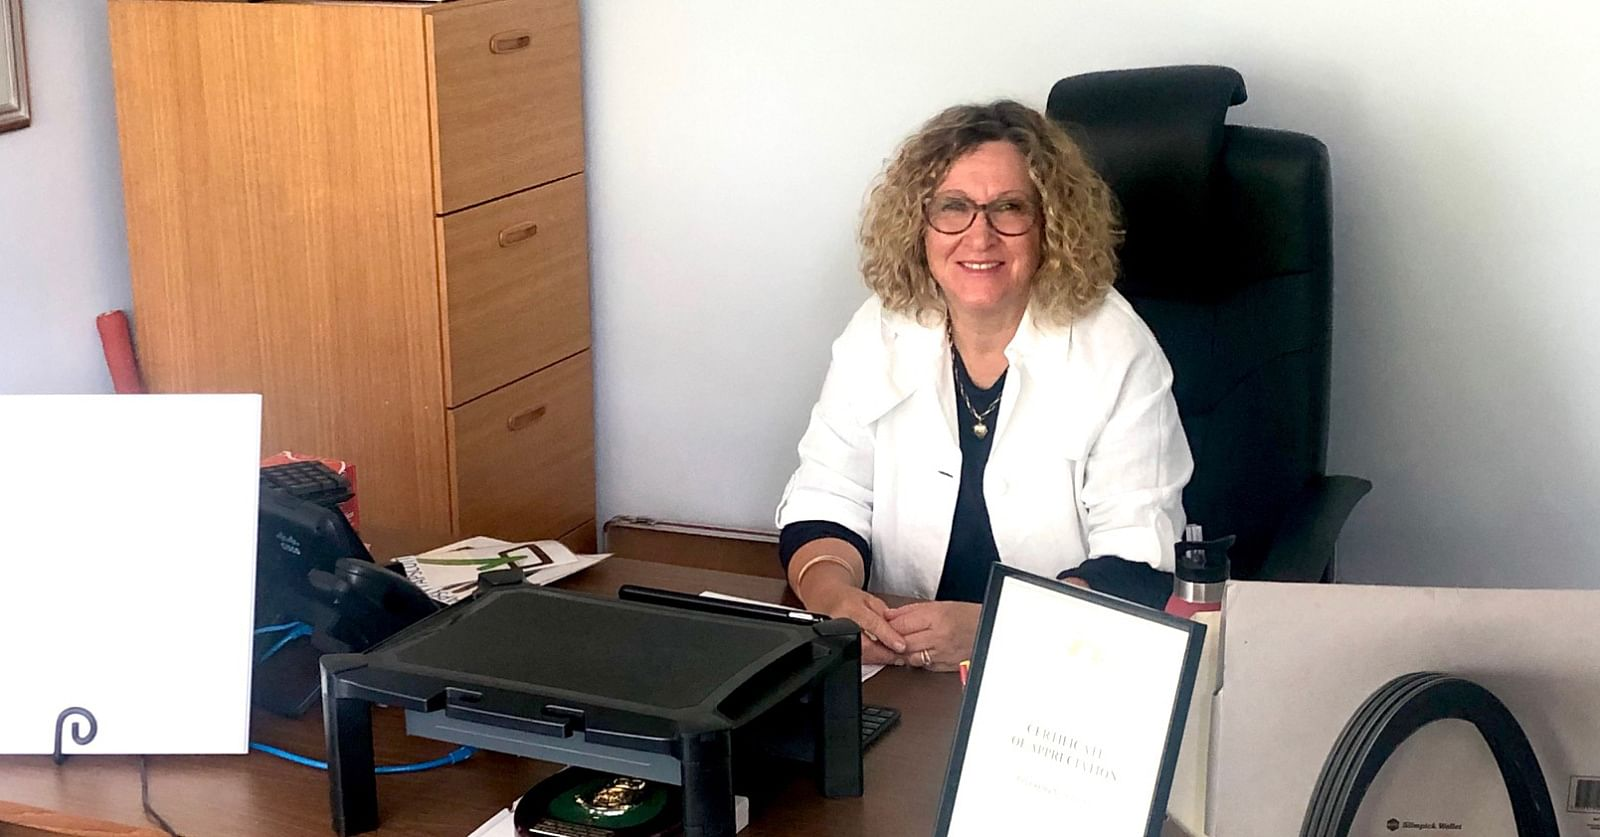 Photo: Cr Sharon Tapscott, at work as Mayor of Bega Valley Shire Council